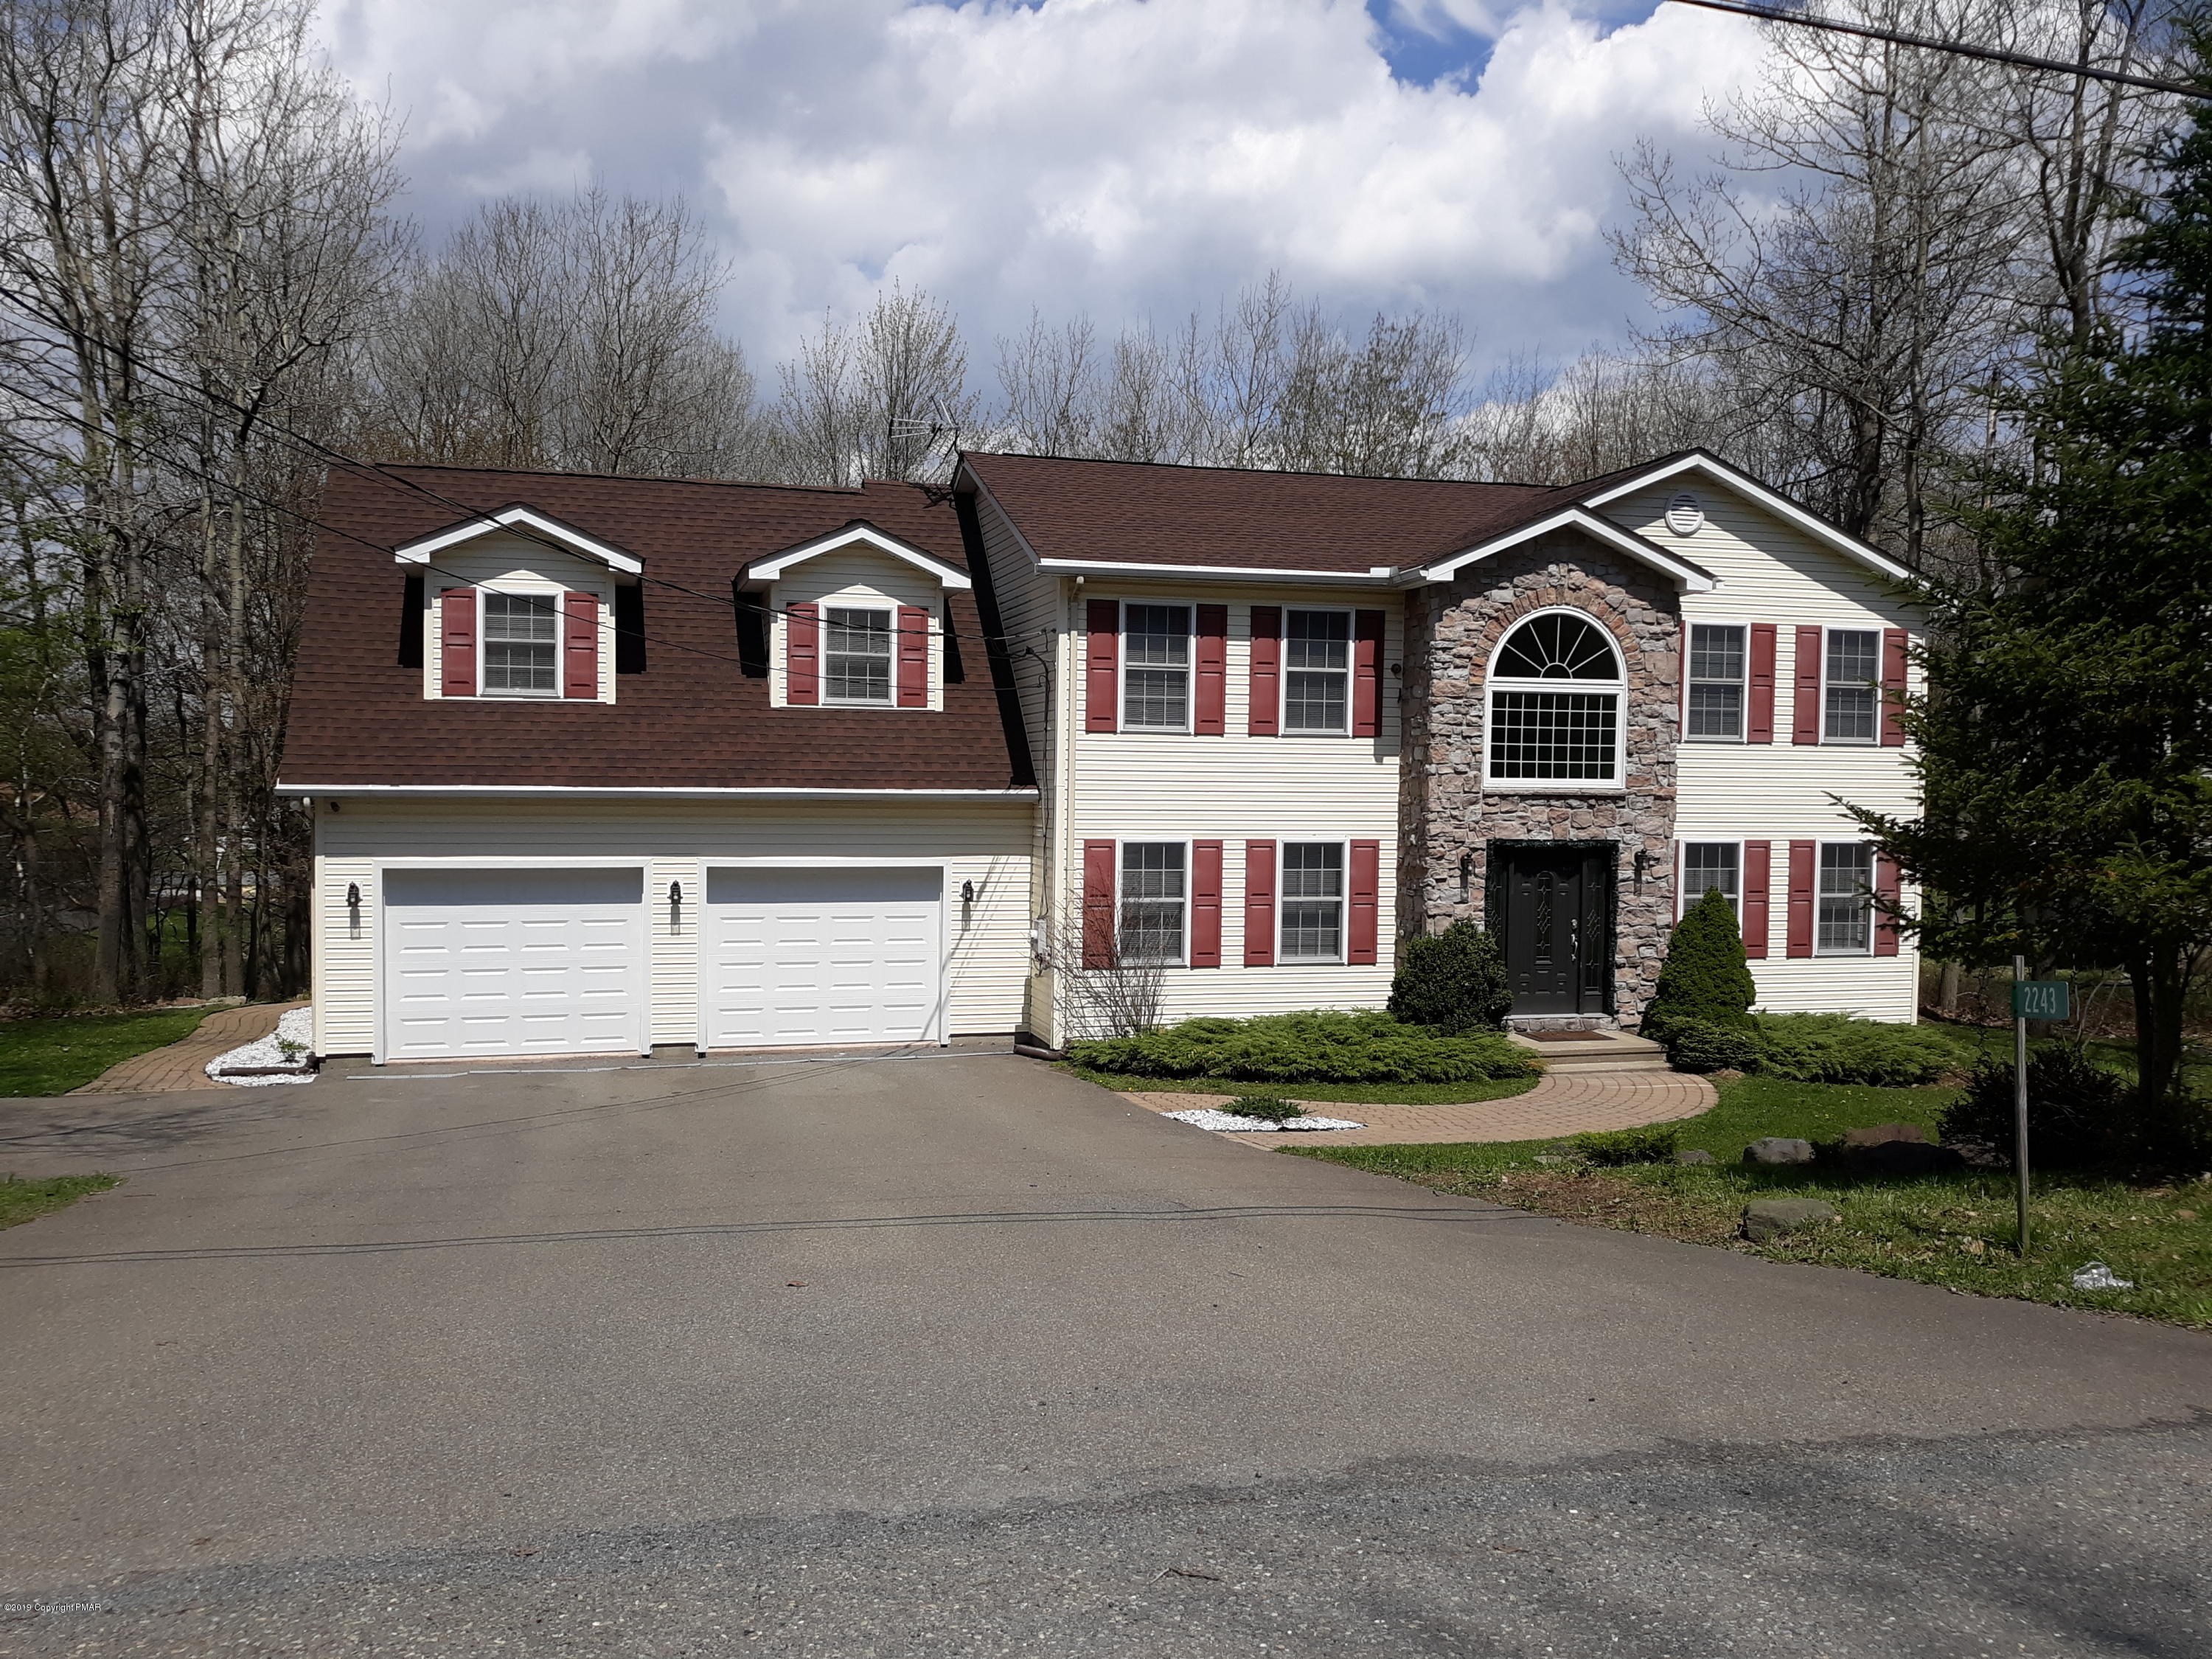 2243 Doe Dr, Long Pond, PA 18334